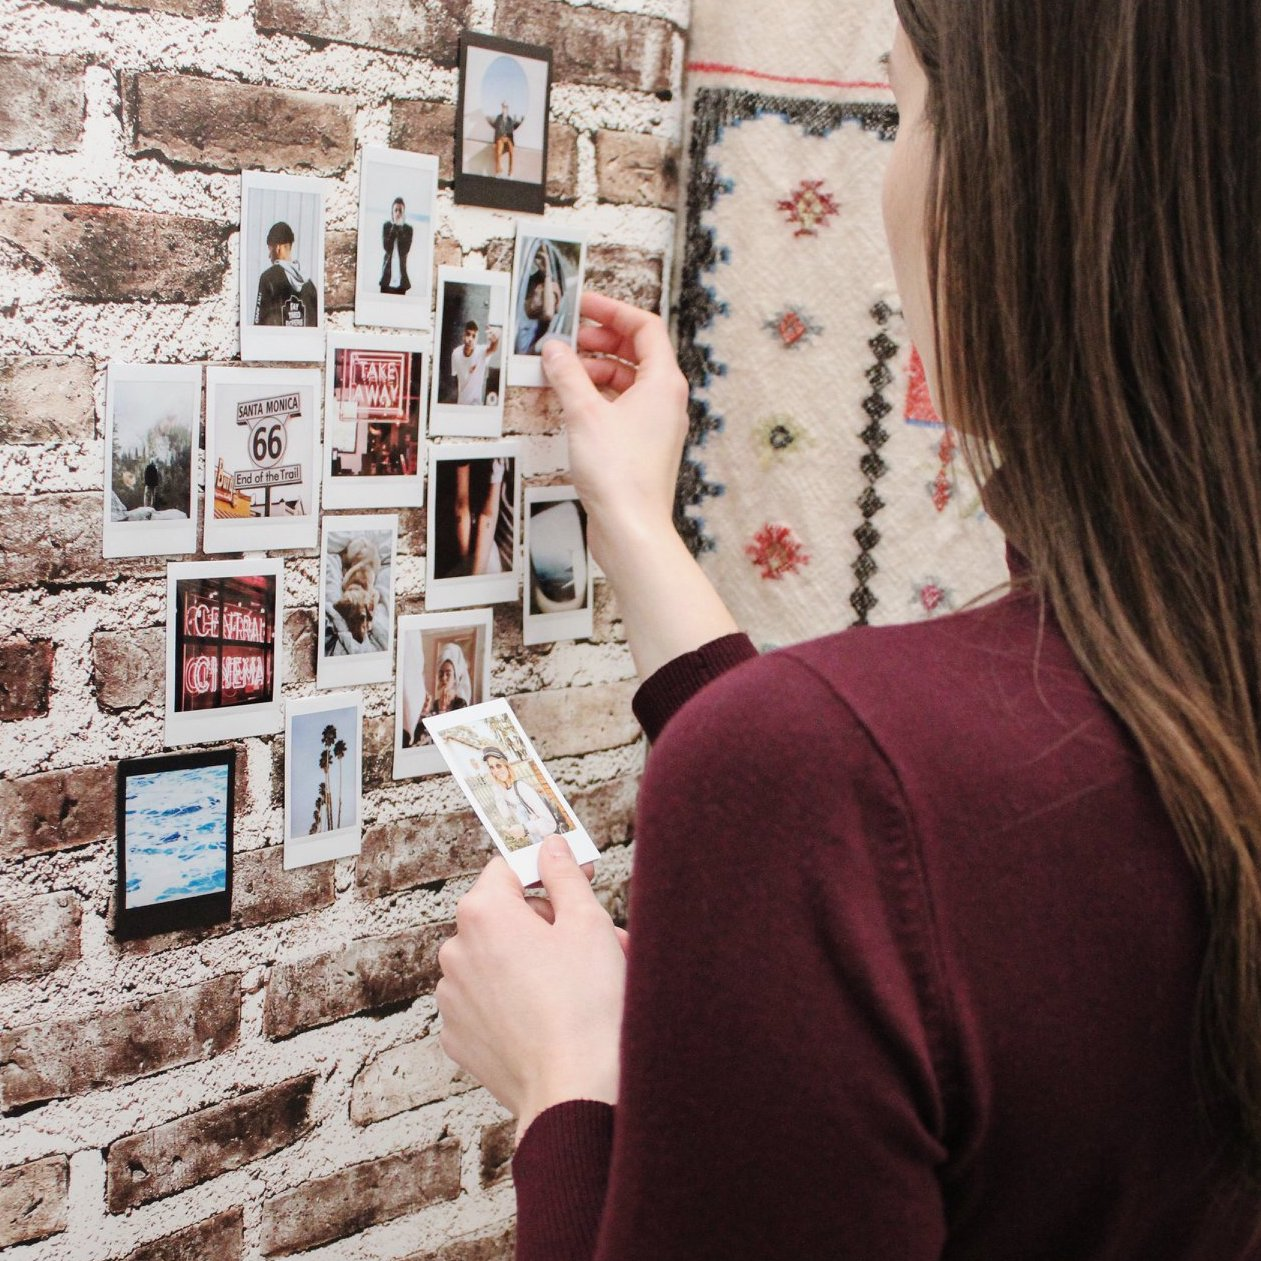 instax photo wall